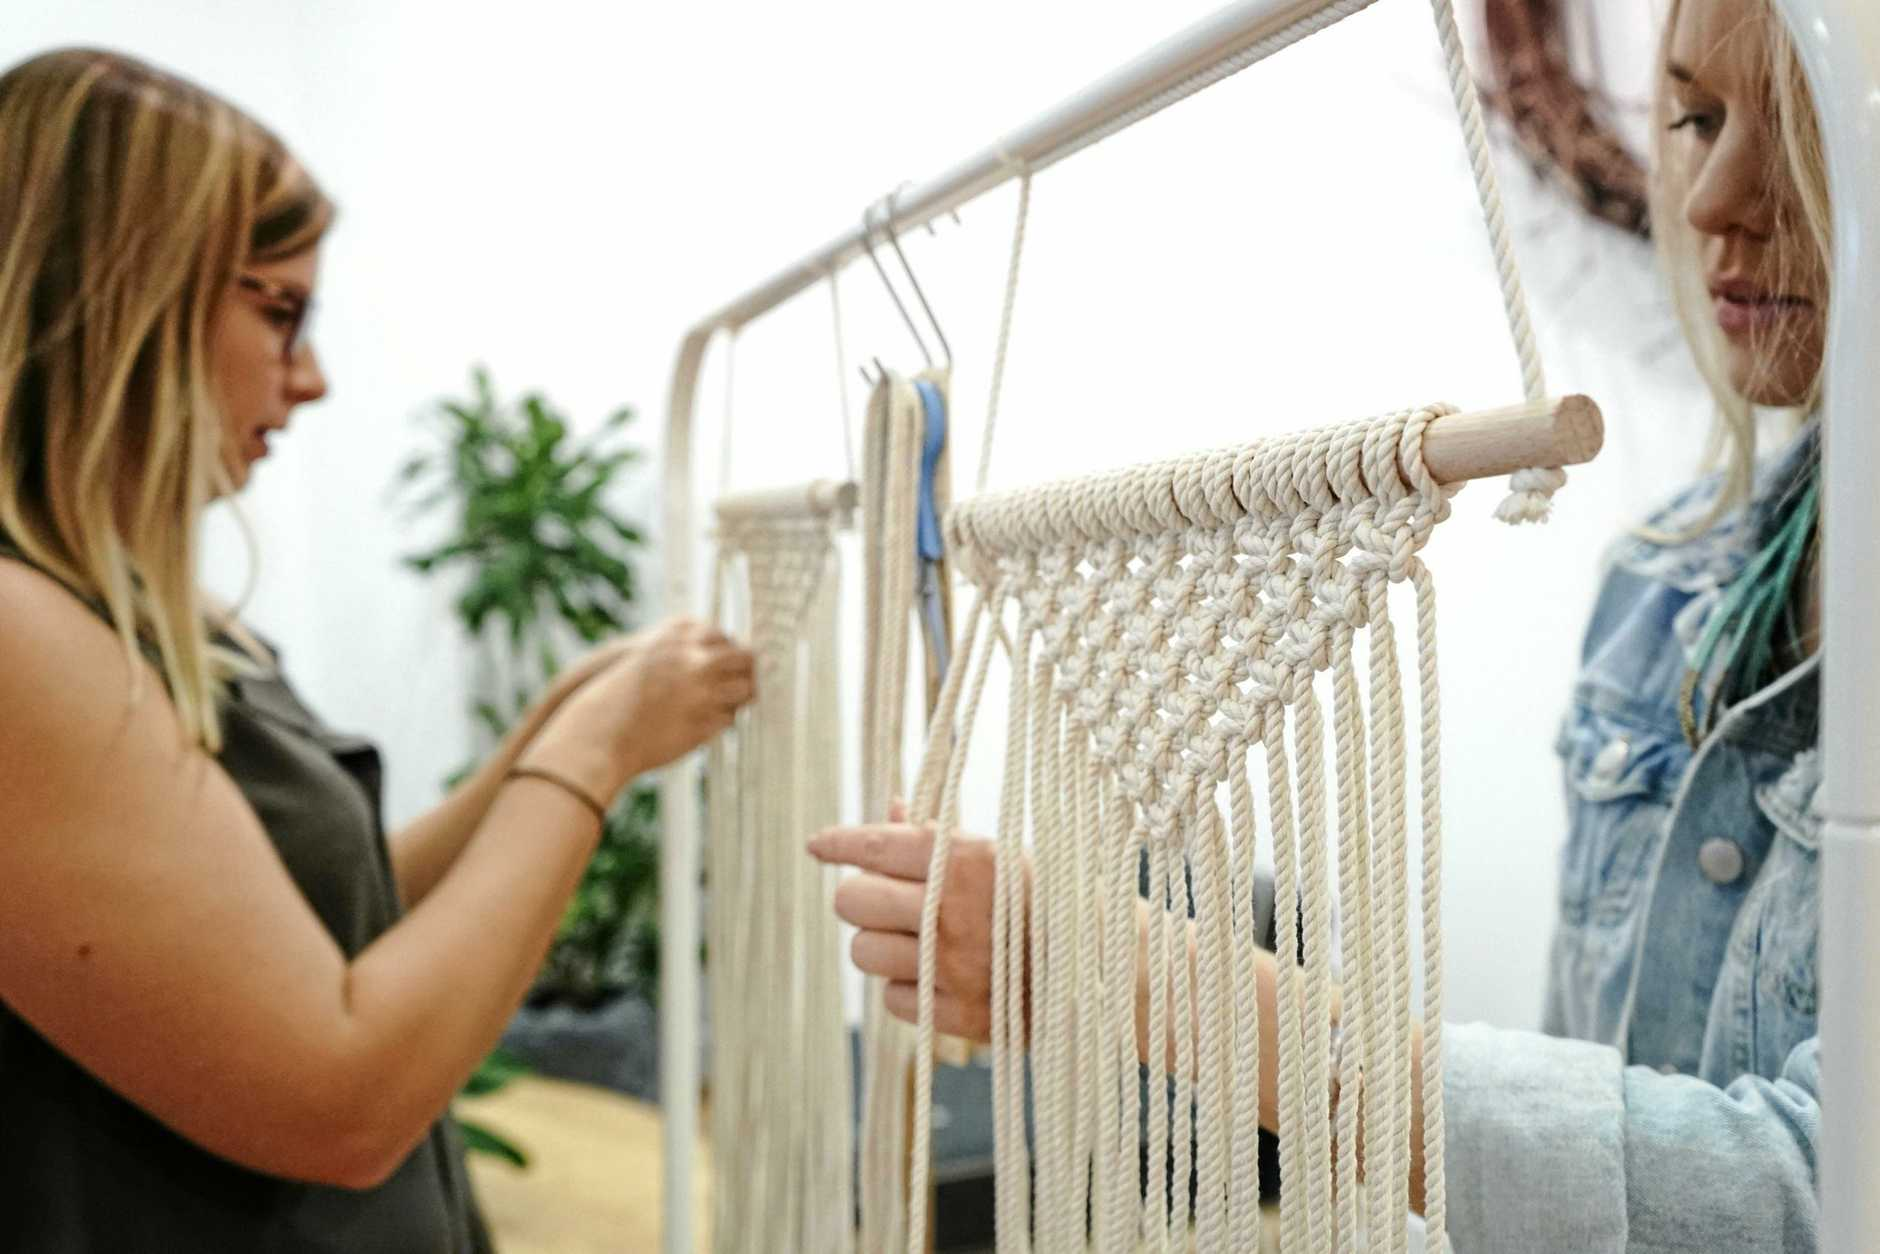 FUN FOR ALL: A macrame workshop is just one of the many HAVEN activities.